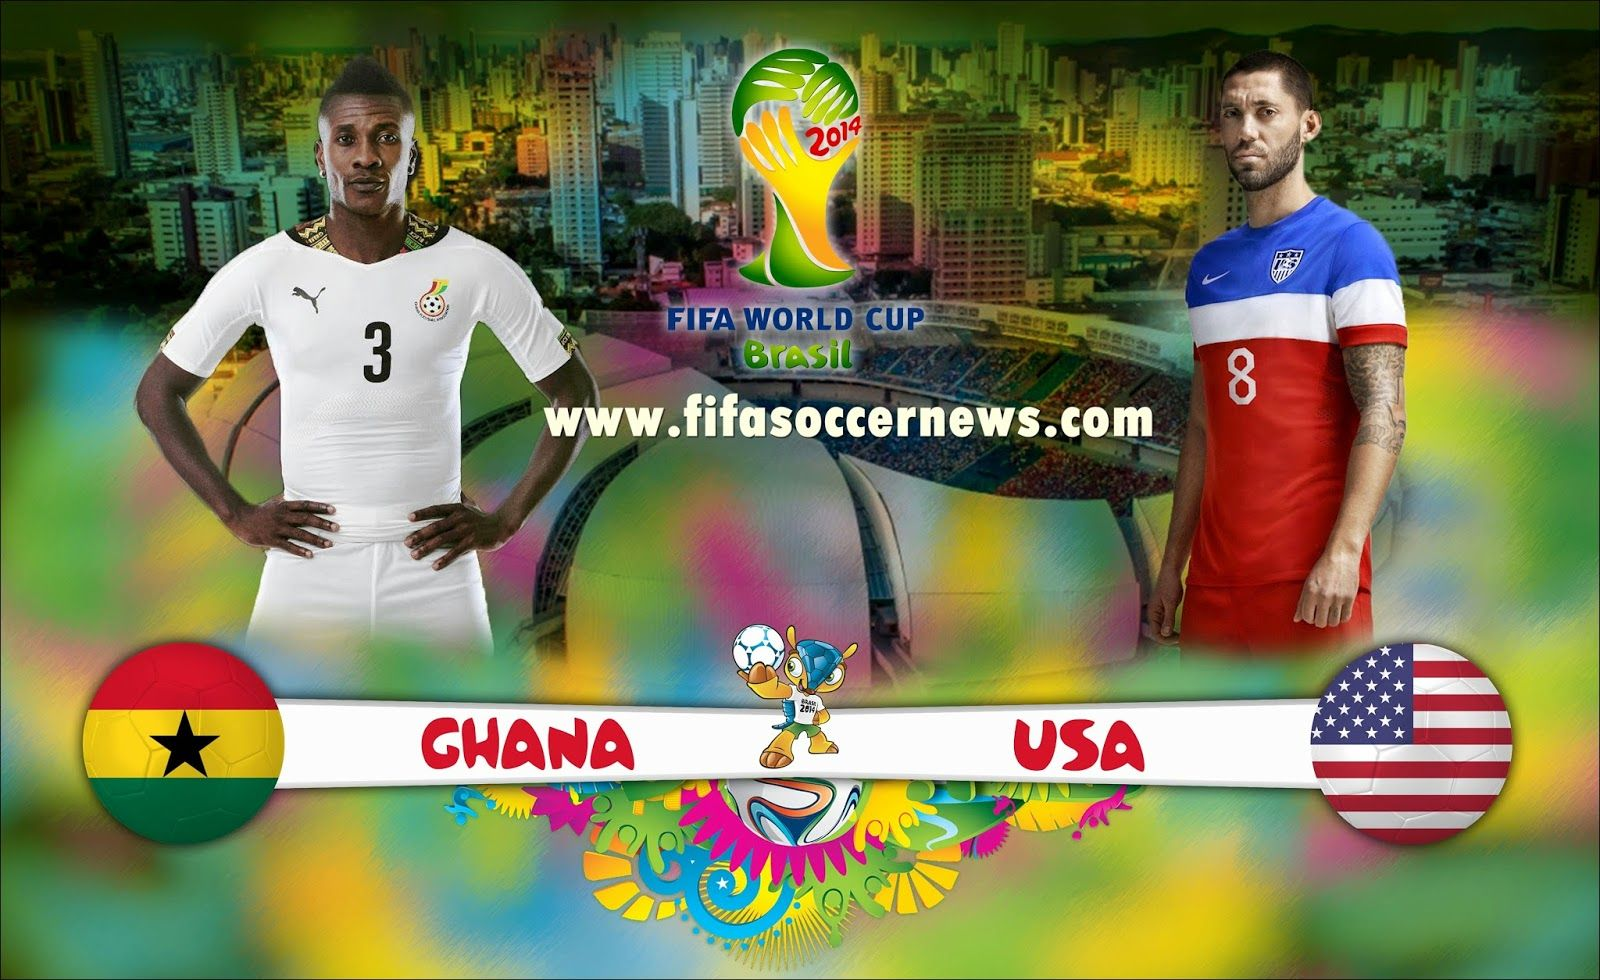 Usa Vs Ghana Again Face Each Other In Fifa World Cup 2014 On 16 June 2014 Same Teams Played In 2010 Fifa World Cu World Cup Groups Soccer World Usa World Cup